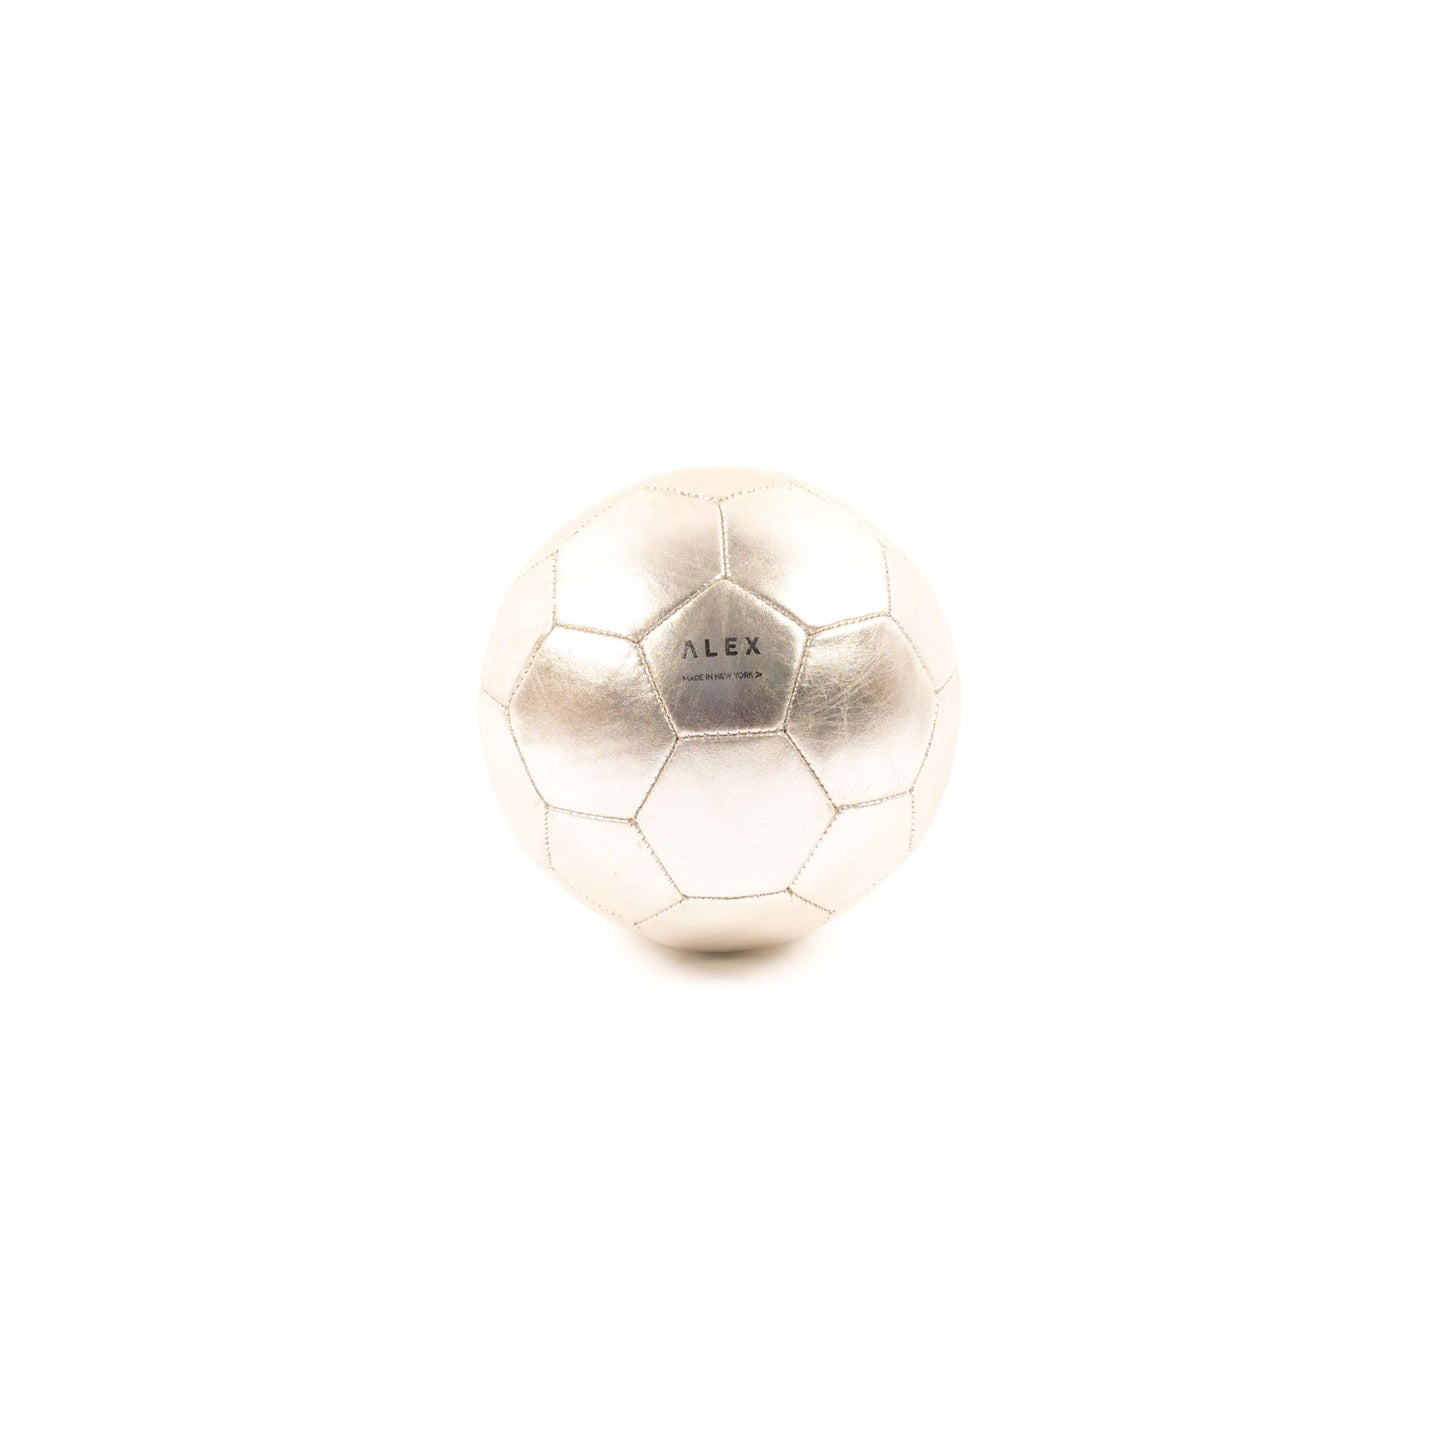 Soccer Ball - Silver (Soccer) - Athletics Made in USA | Made By Alex